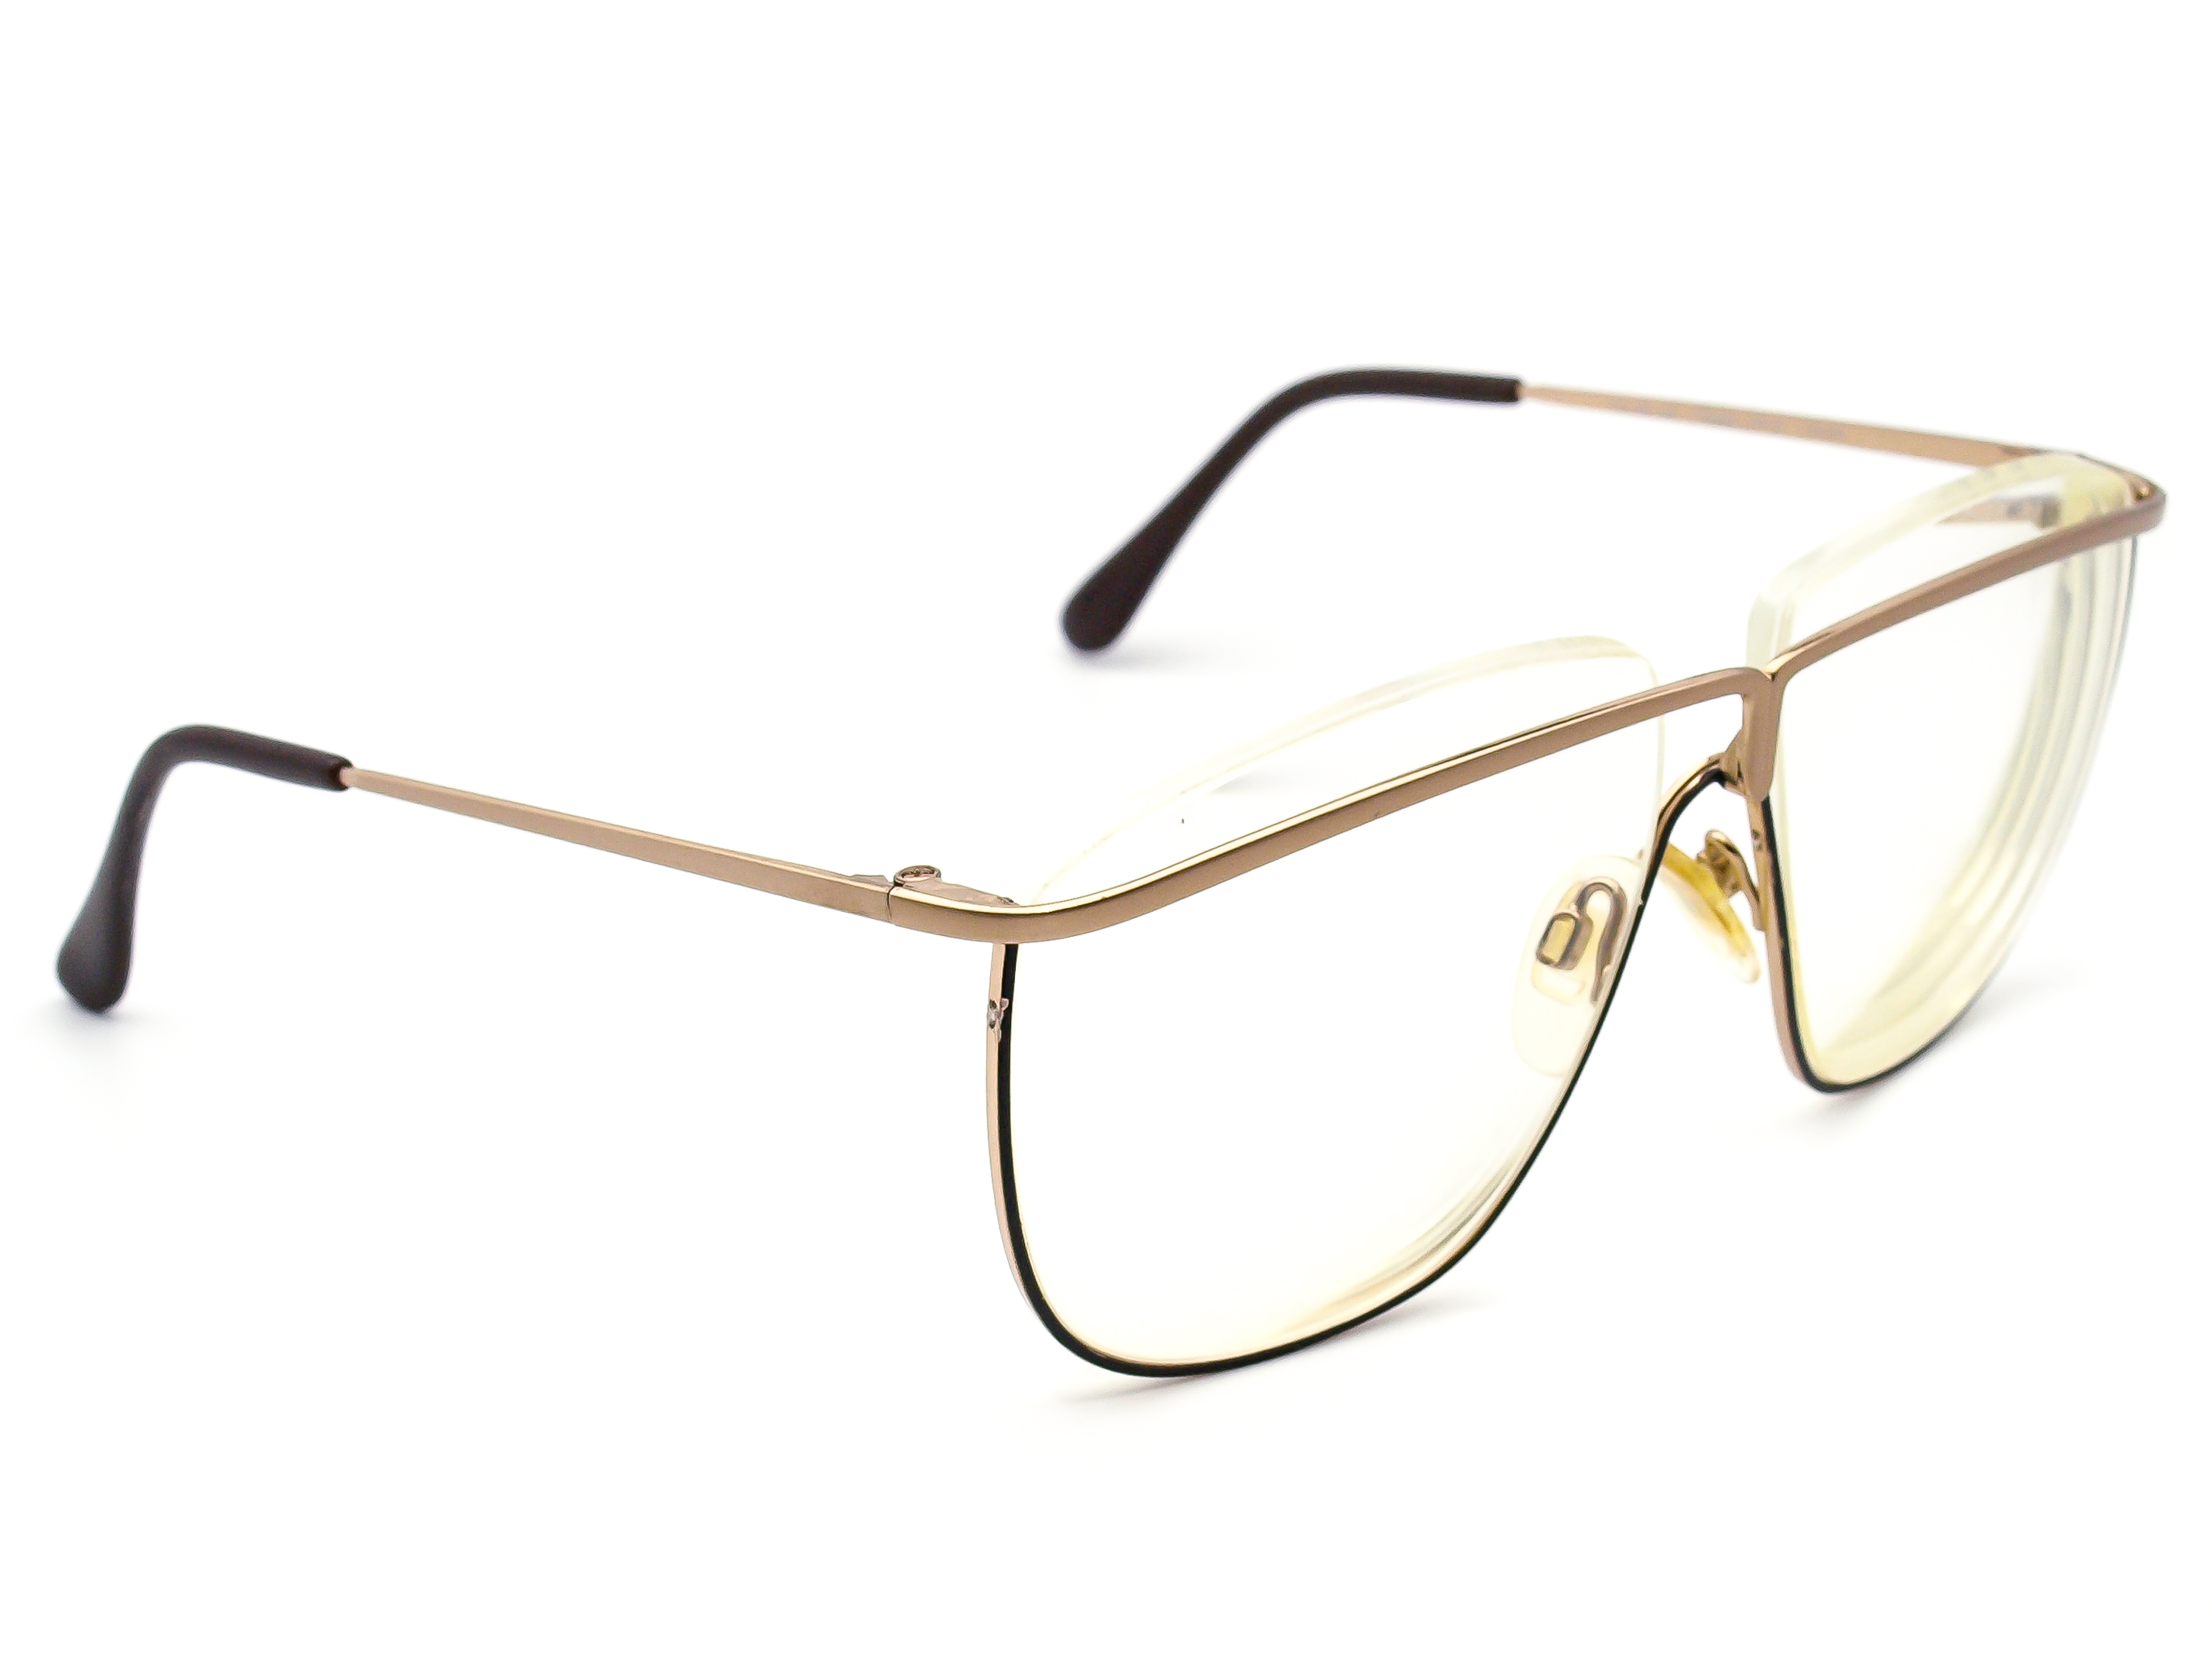 Charmant 490 Oversized Matte Gold & Black Eyeglasses